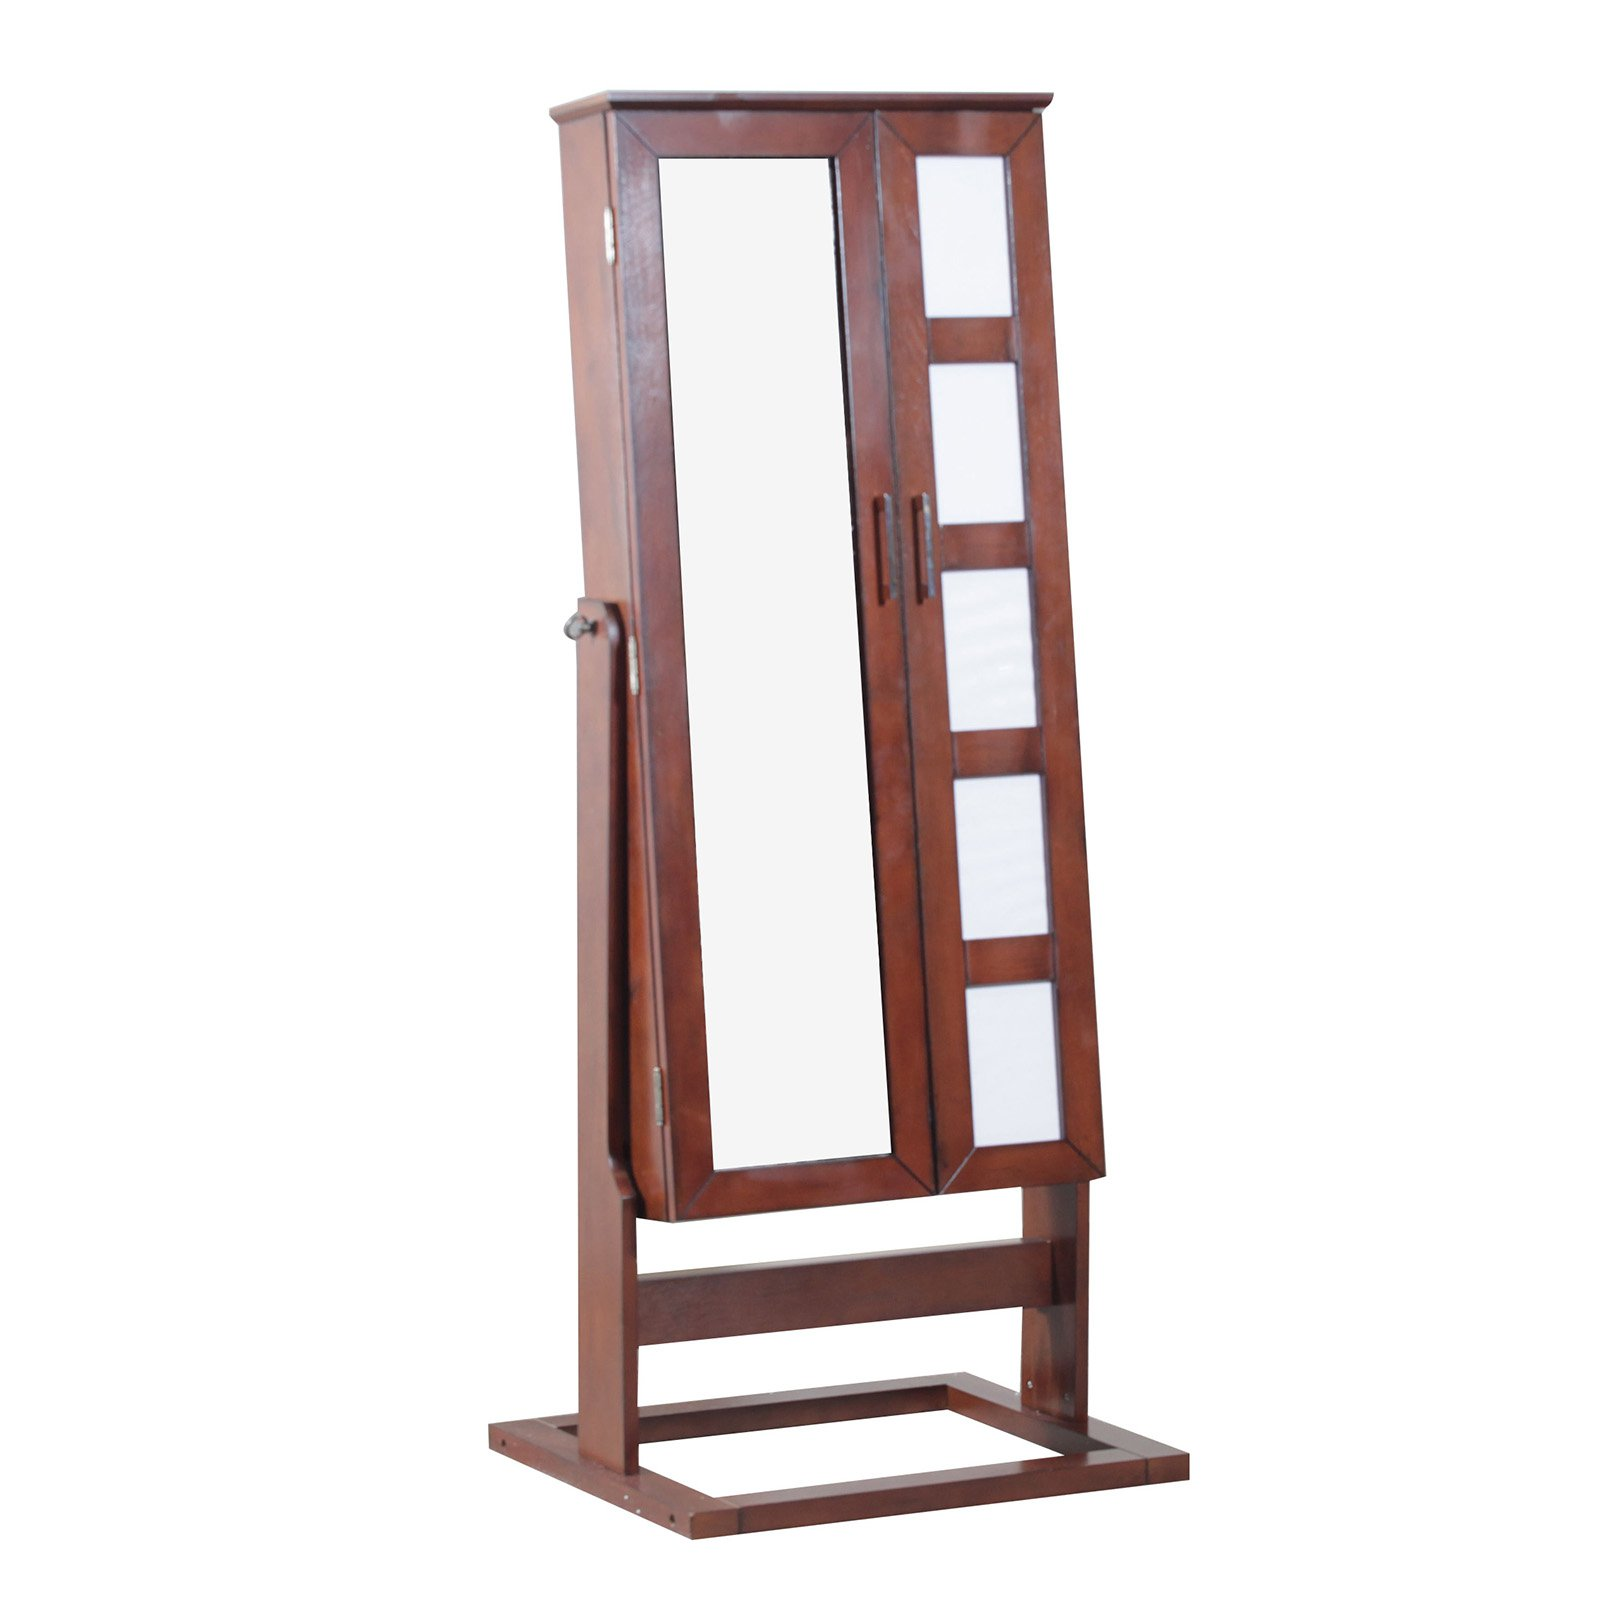 Cheval Jewelry Armoire With Five-Photo Display, Cherry Finish by L. Powell Acquiition Corp